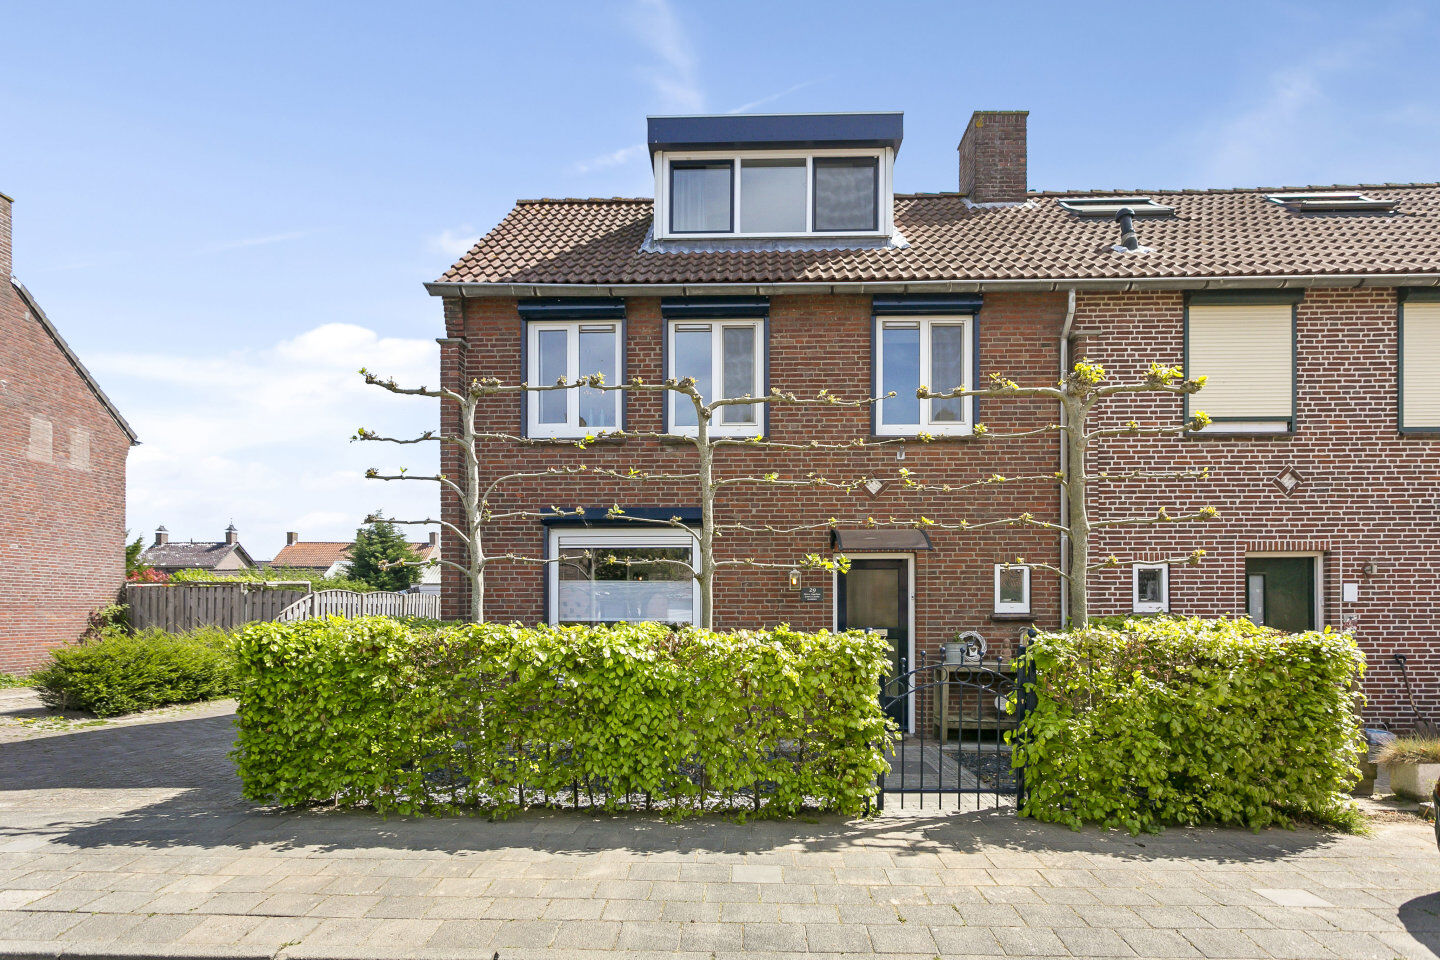 26583-philips_willemstraat_29-dinteloord-3372103333